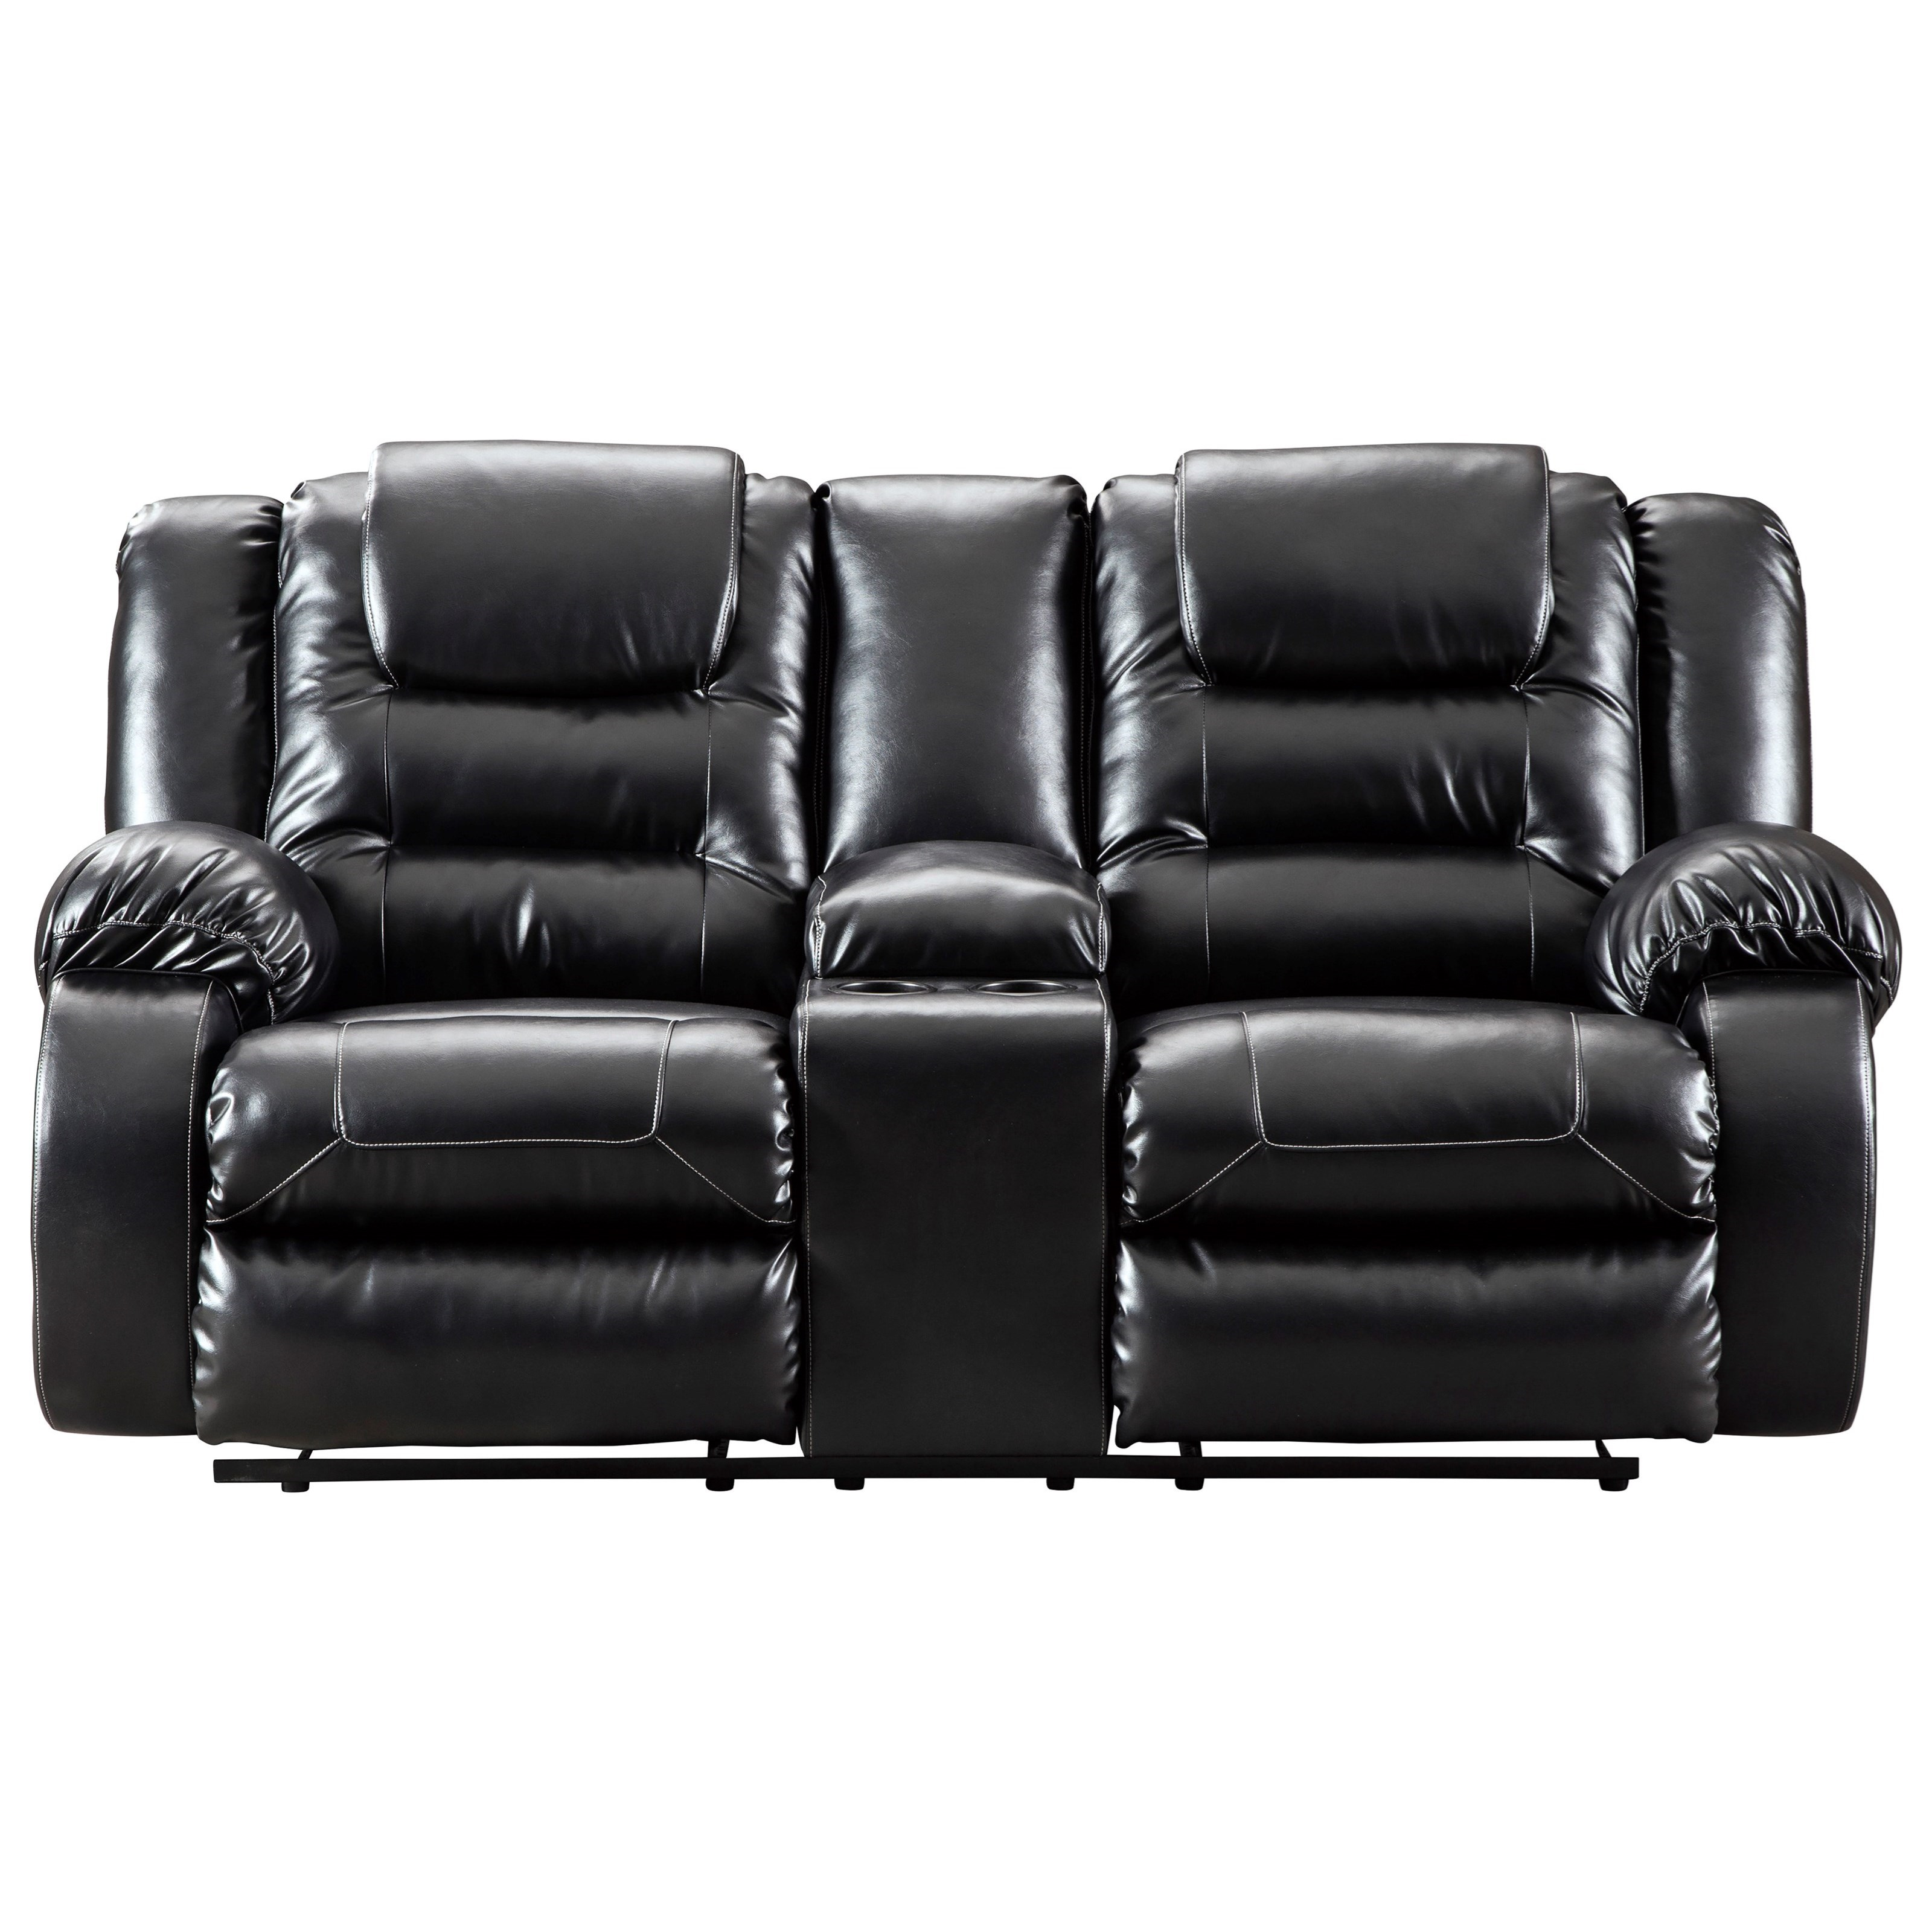 Vacherie Reclining Love Seat by Signature Design by Ashley at Northeast Factory Direct